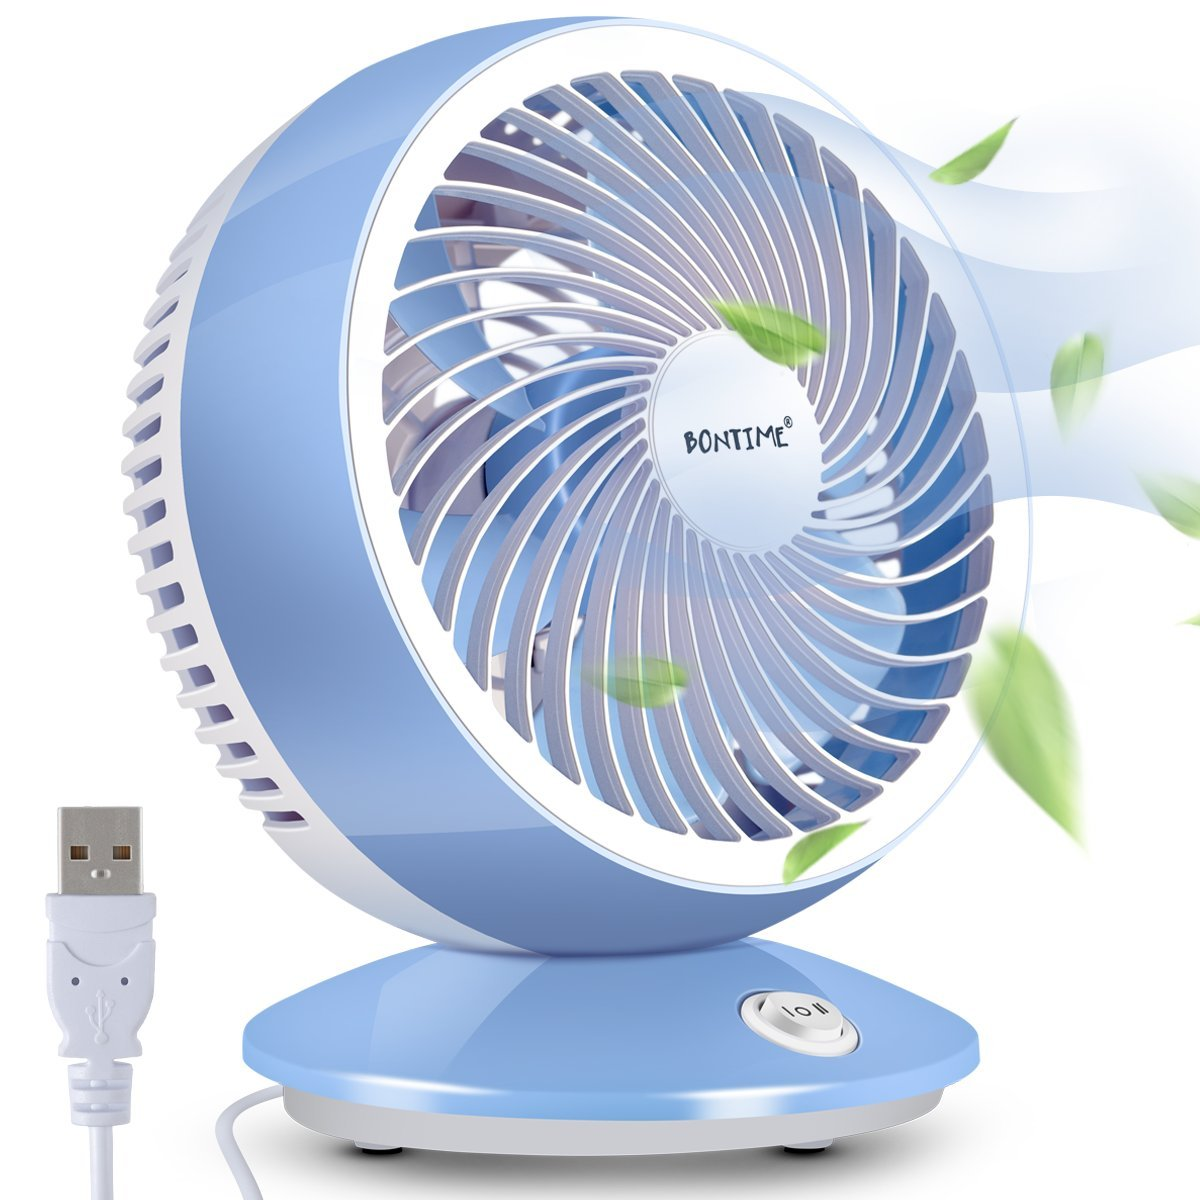 BONTIME Desk Fan - Table Fan for Home, Ultra Quiet Cooling Personal Fan Air Circulator Fan with Adjustable Tilt, Brushless Motor, USB Powered Fan - Long Cord, 6 Inches (Maya Blue)